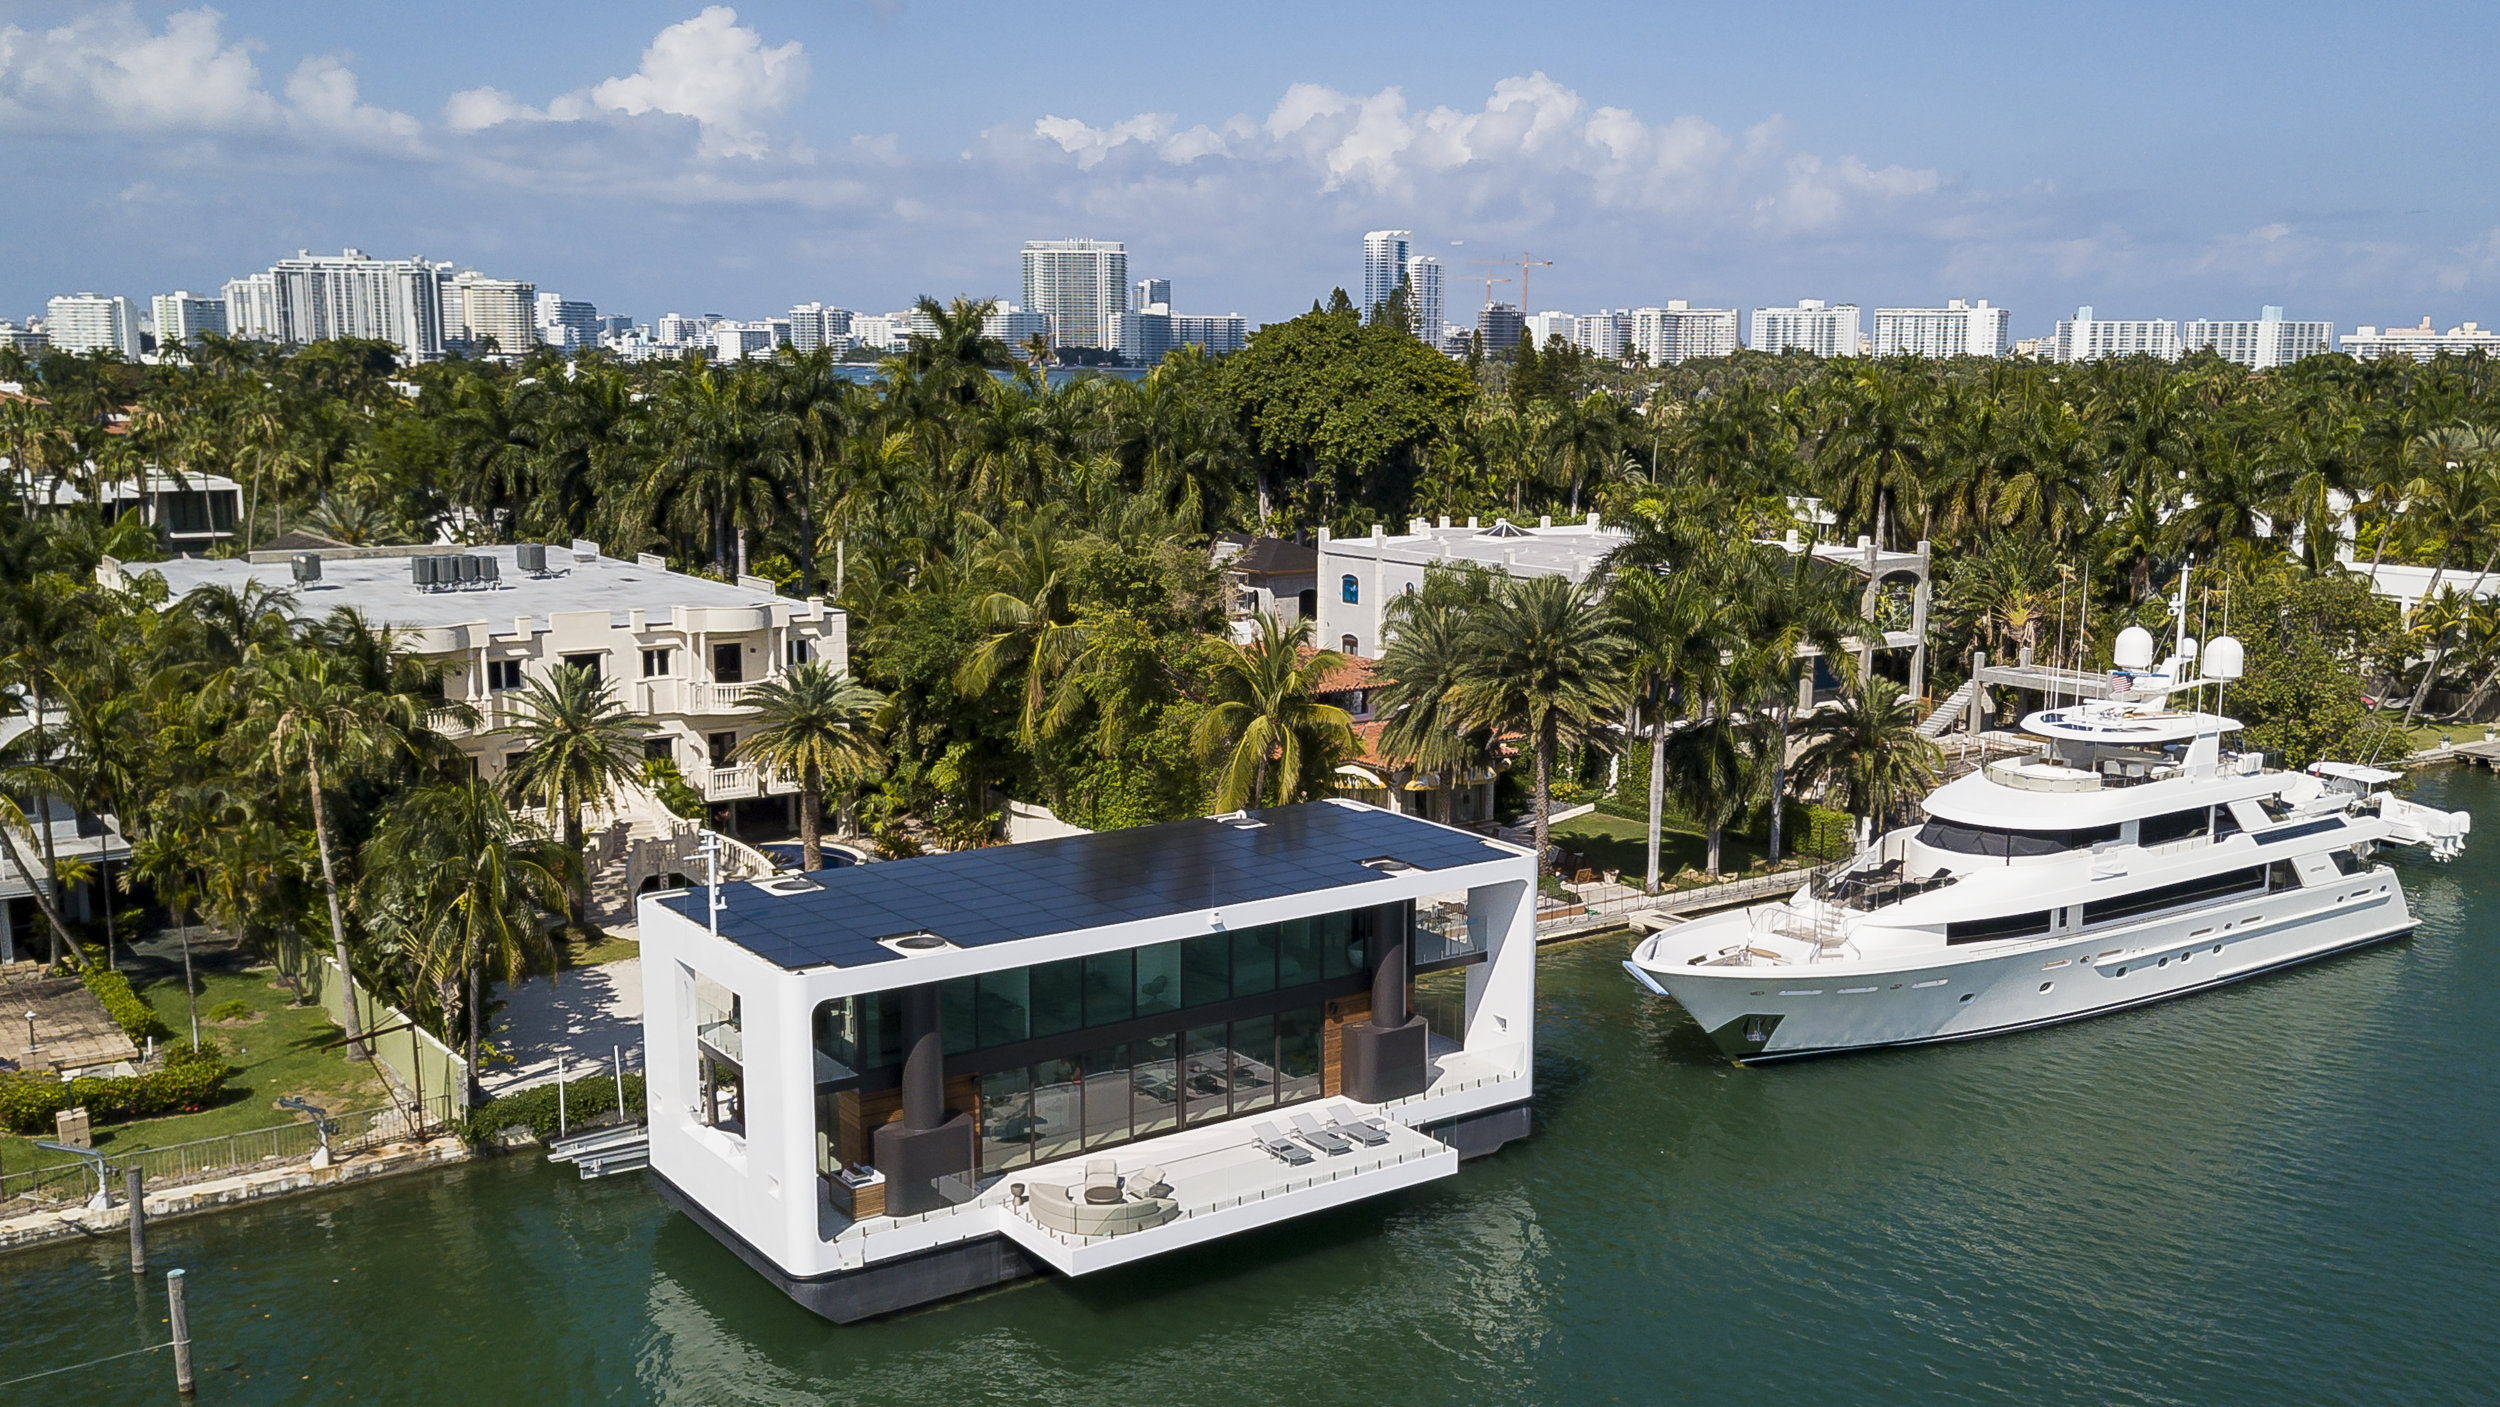 Aerial view of the Arkup houseboat, a green-energy luxury floating home that can adapt to sea rise, as it docks off Palm Island near Miami Beach on Saturday, April 27, 2019. The floating house has solar panels, impact resistant windows and can withstand hurricane winds of up to 155 miles per hour.